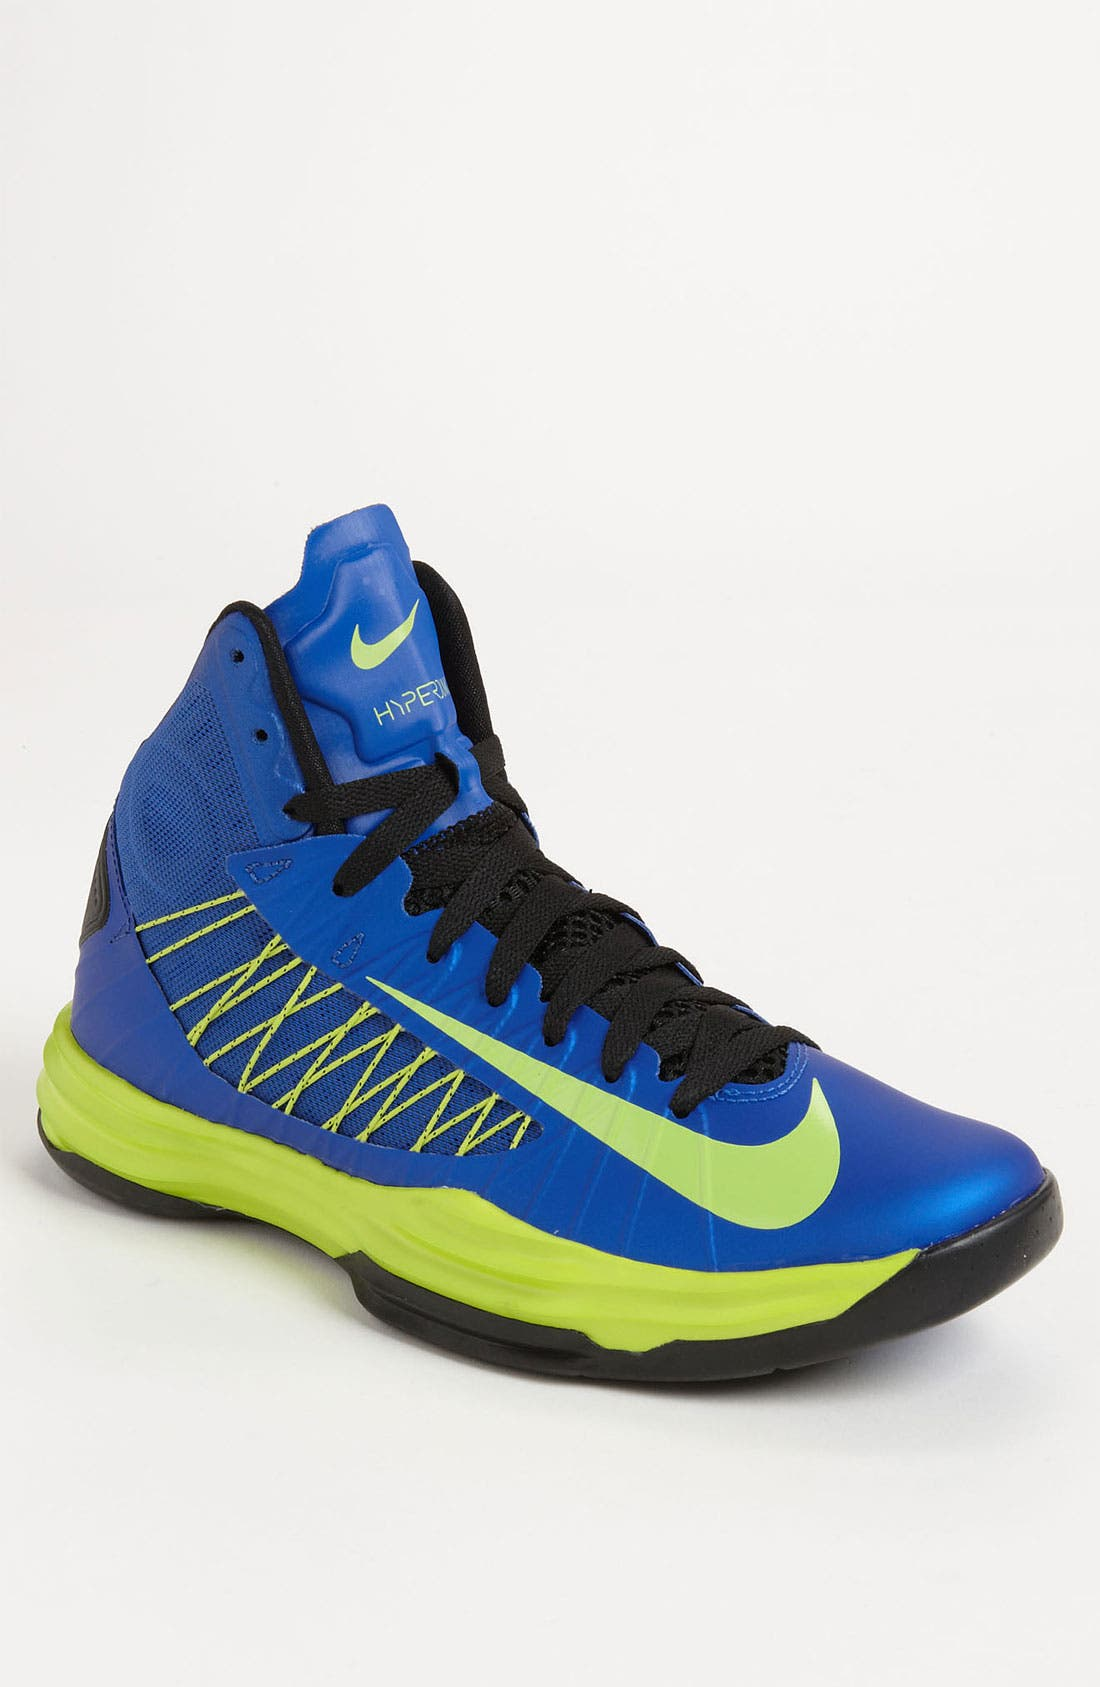 Main Image - Nike 'Hyperdunk' Basketball Shoe (Men)